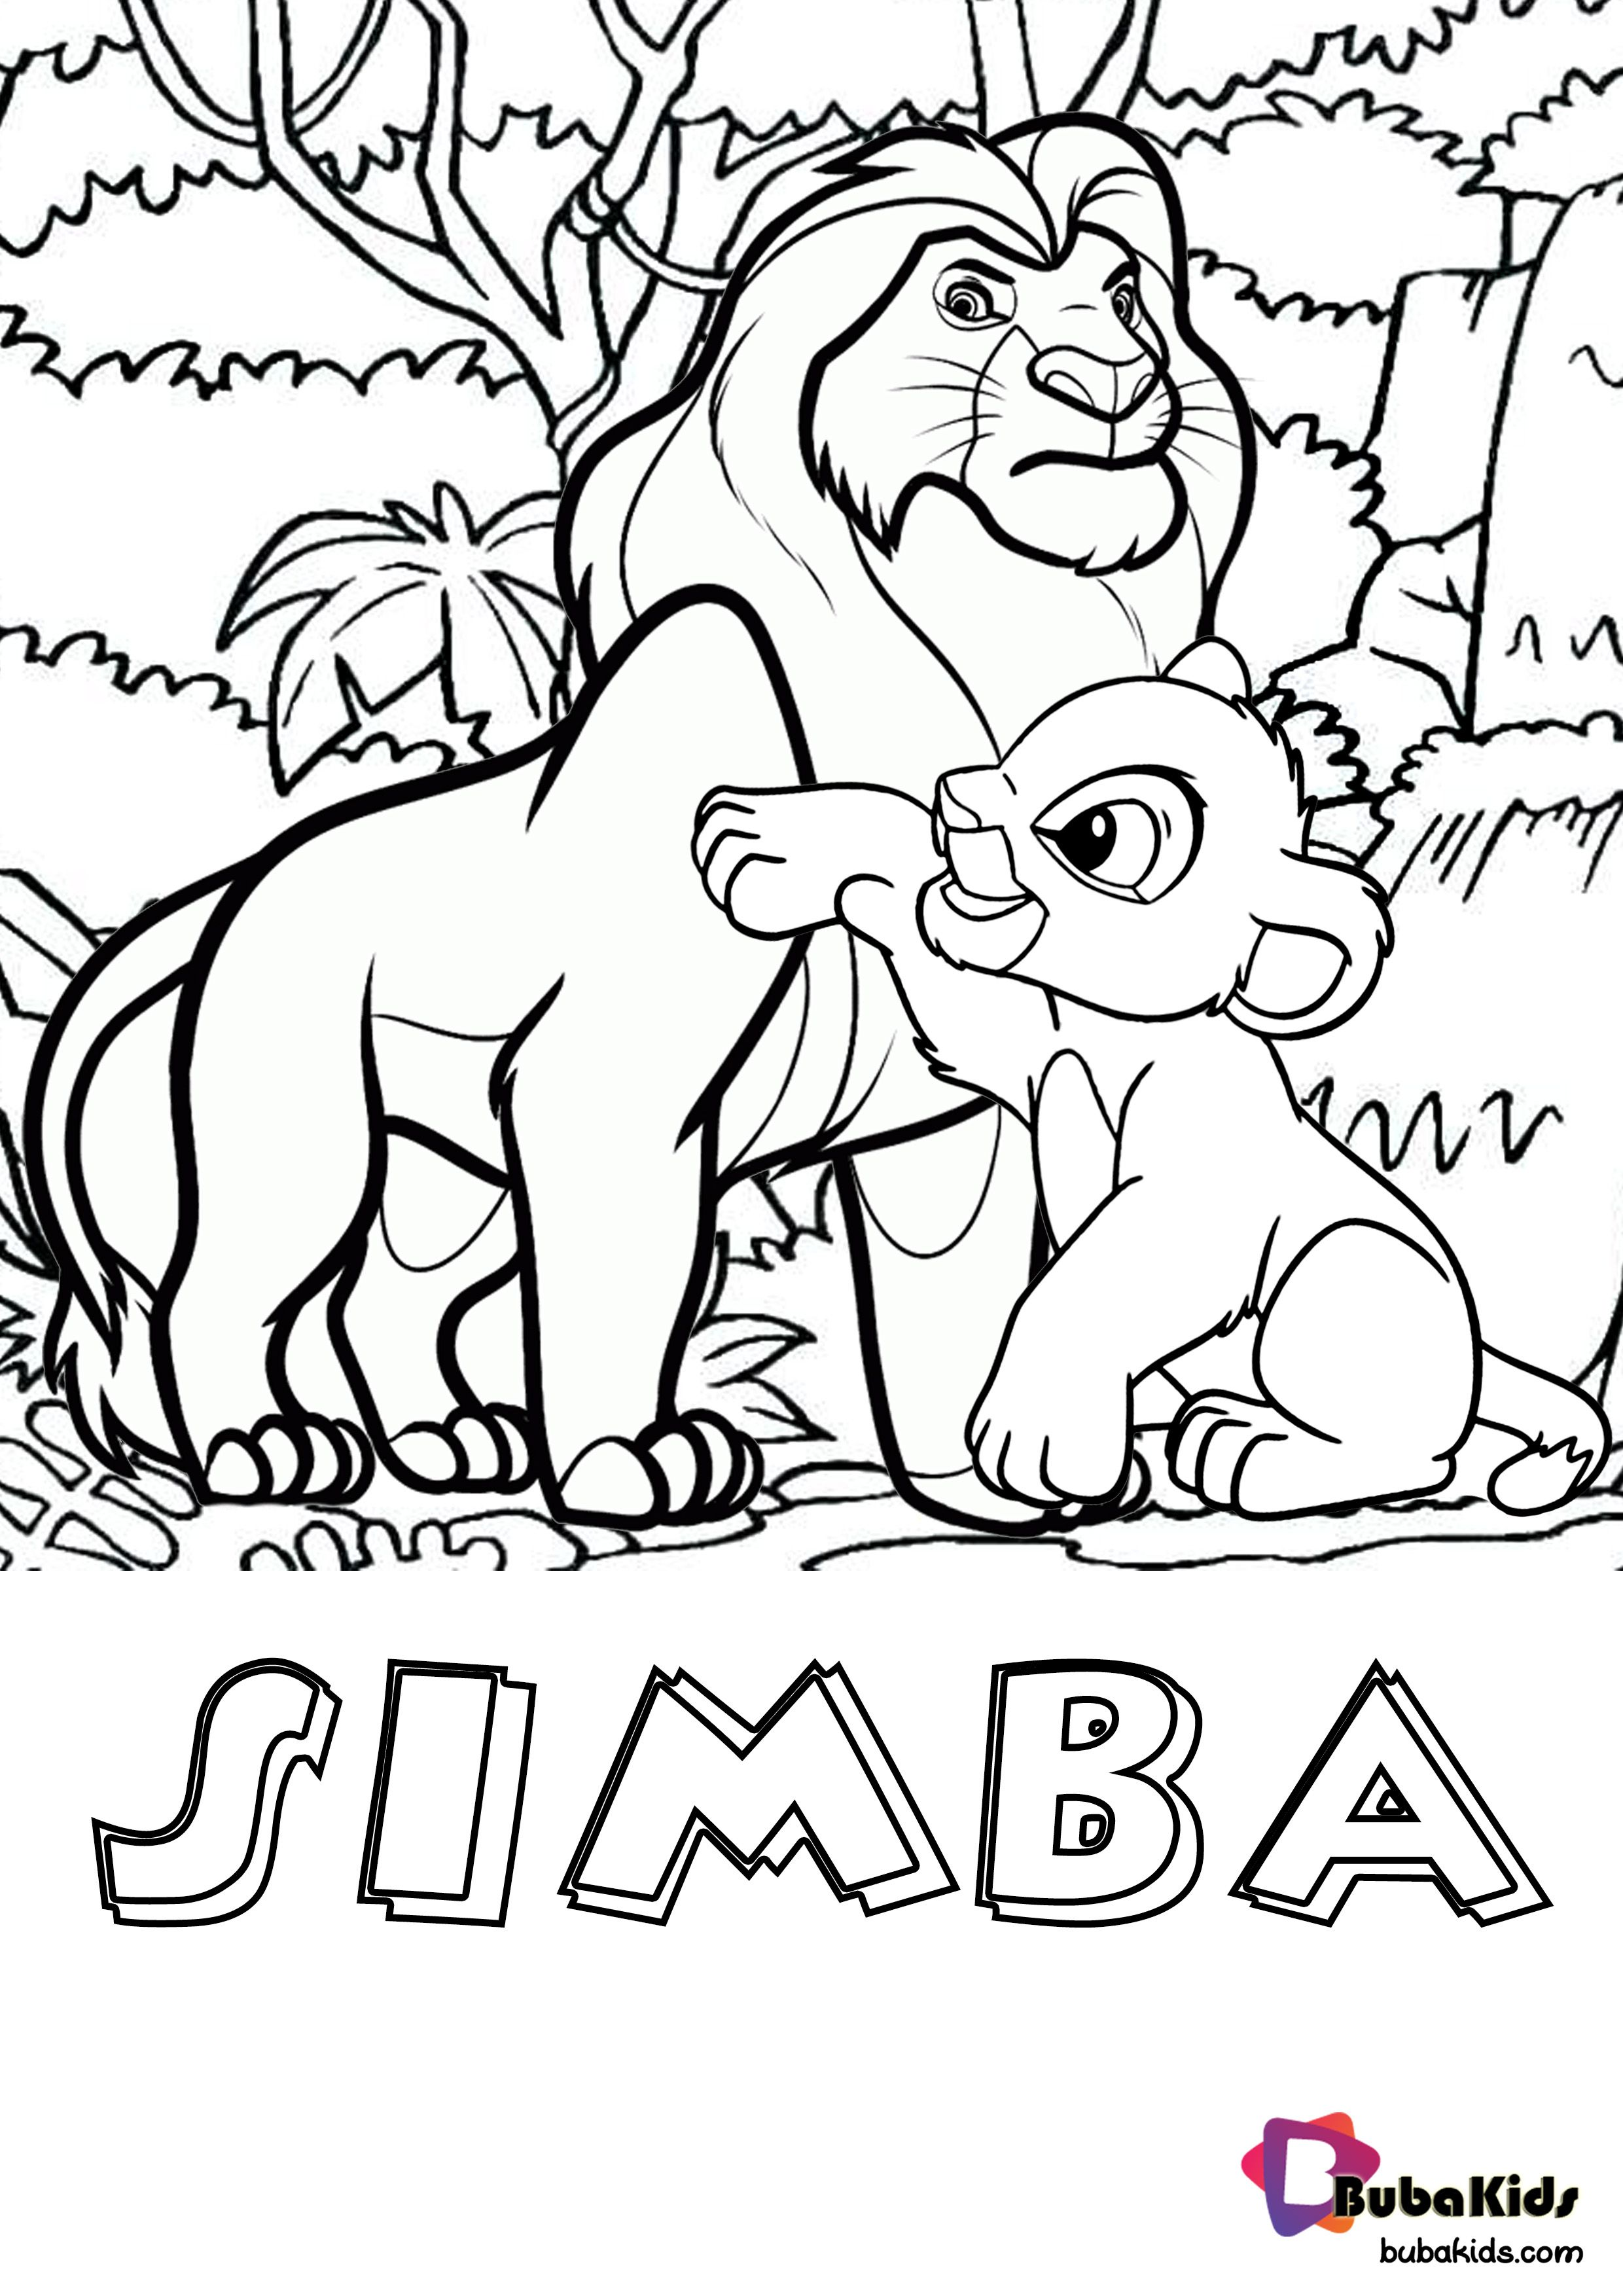 Simba Lion King Printable Coloring Page Free Lionking Simba Lionking Simba Cartoon Colorin Cartoon Coloring Pages Printable Coloring Pages Coloring Pages